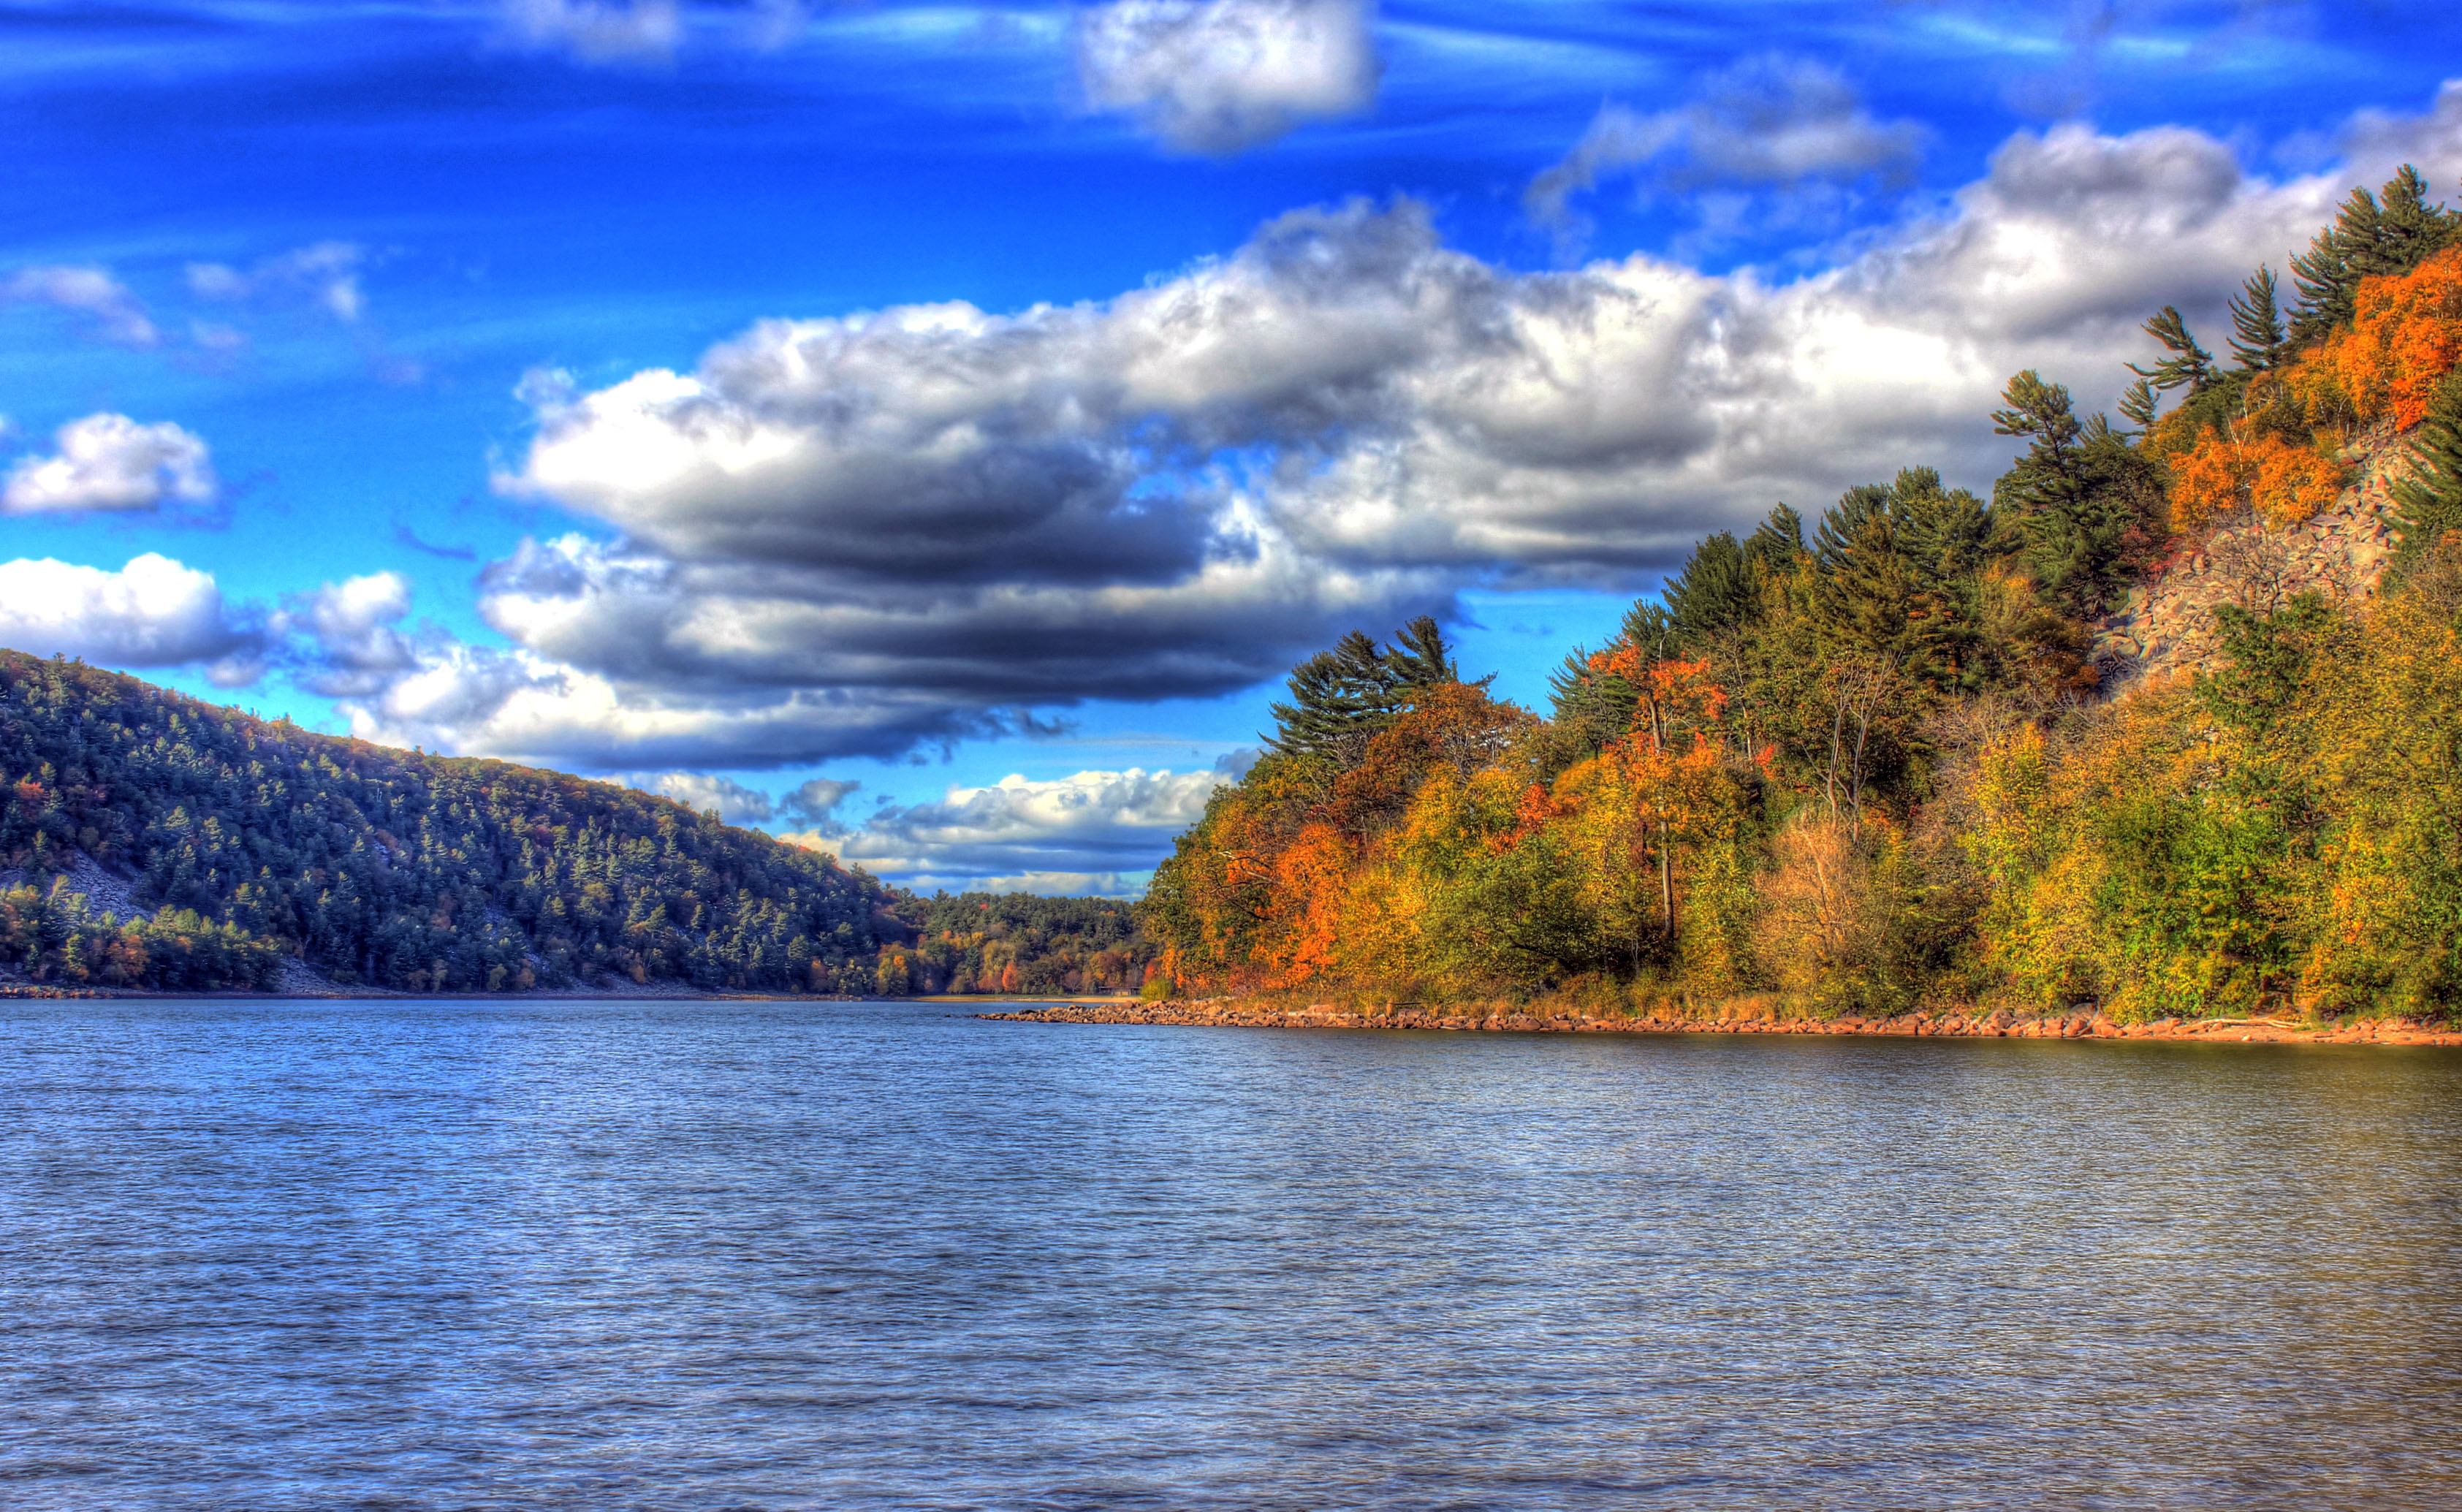 Forest, lake, and clouds at Devil's Lake State Park, Wisconsin.